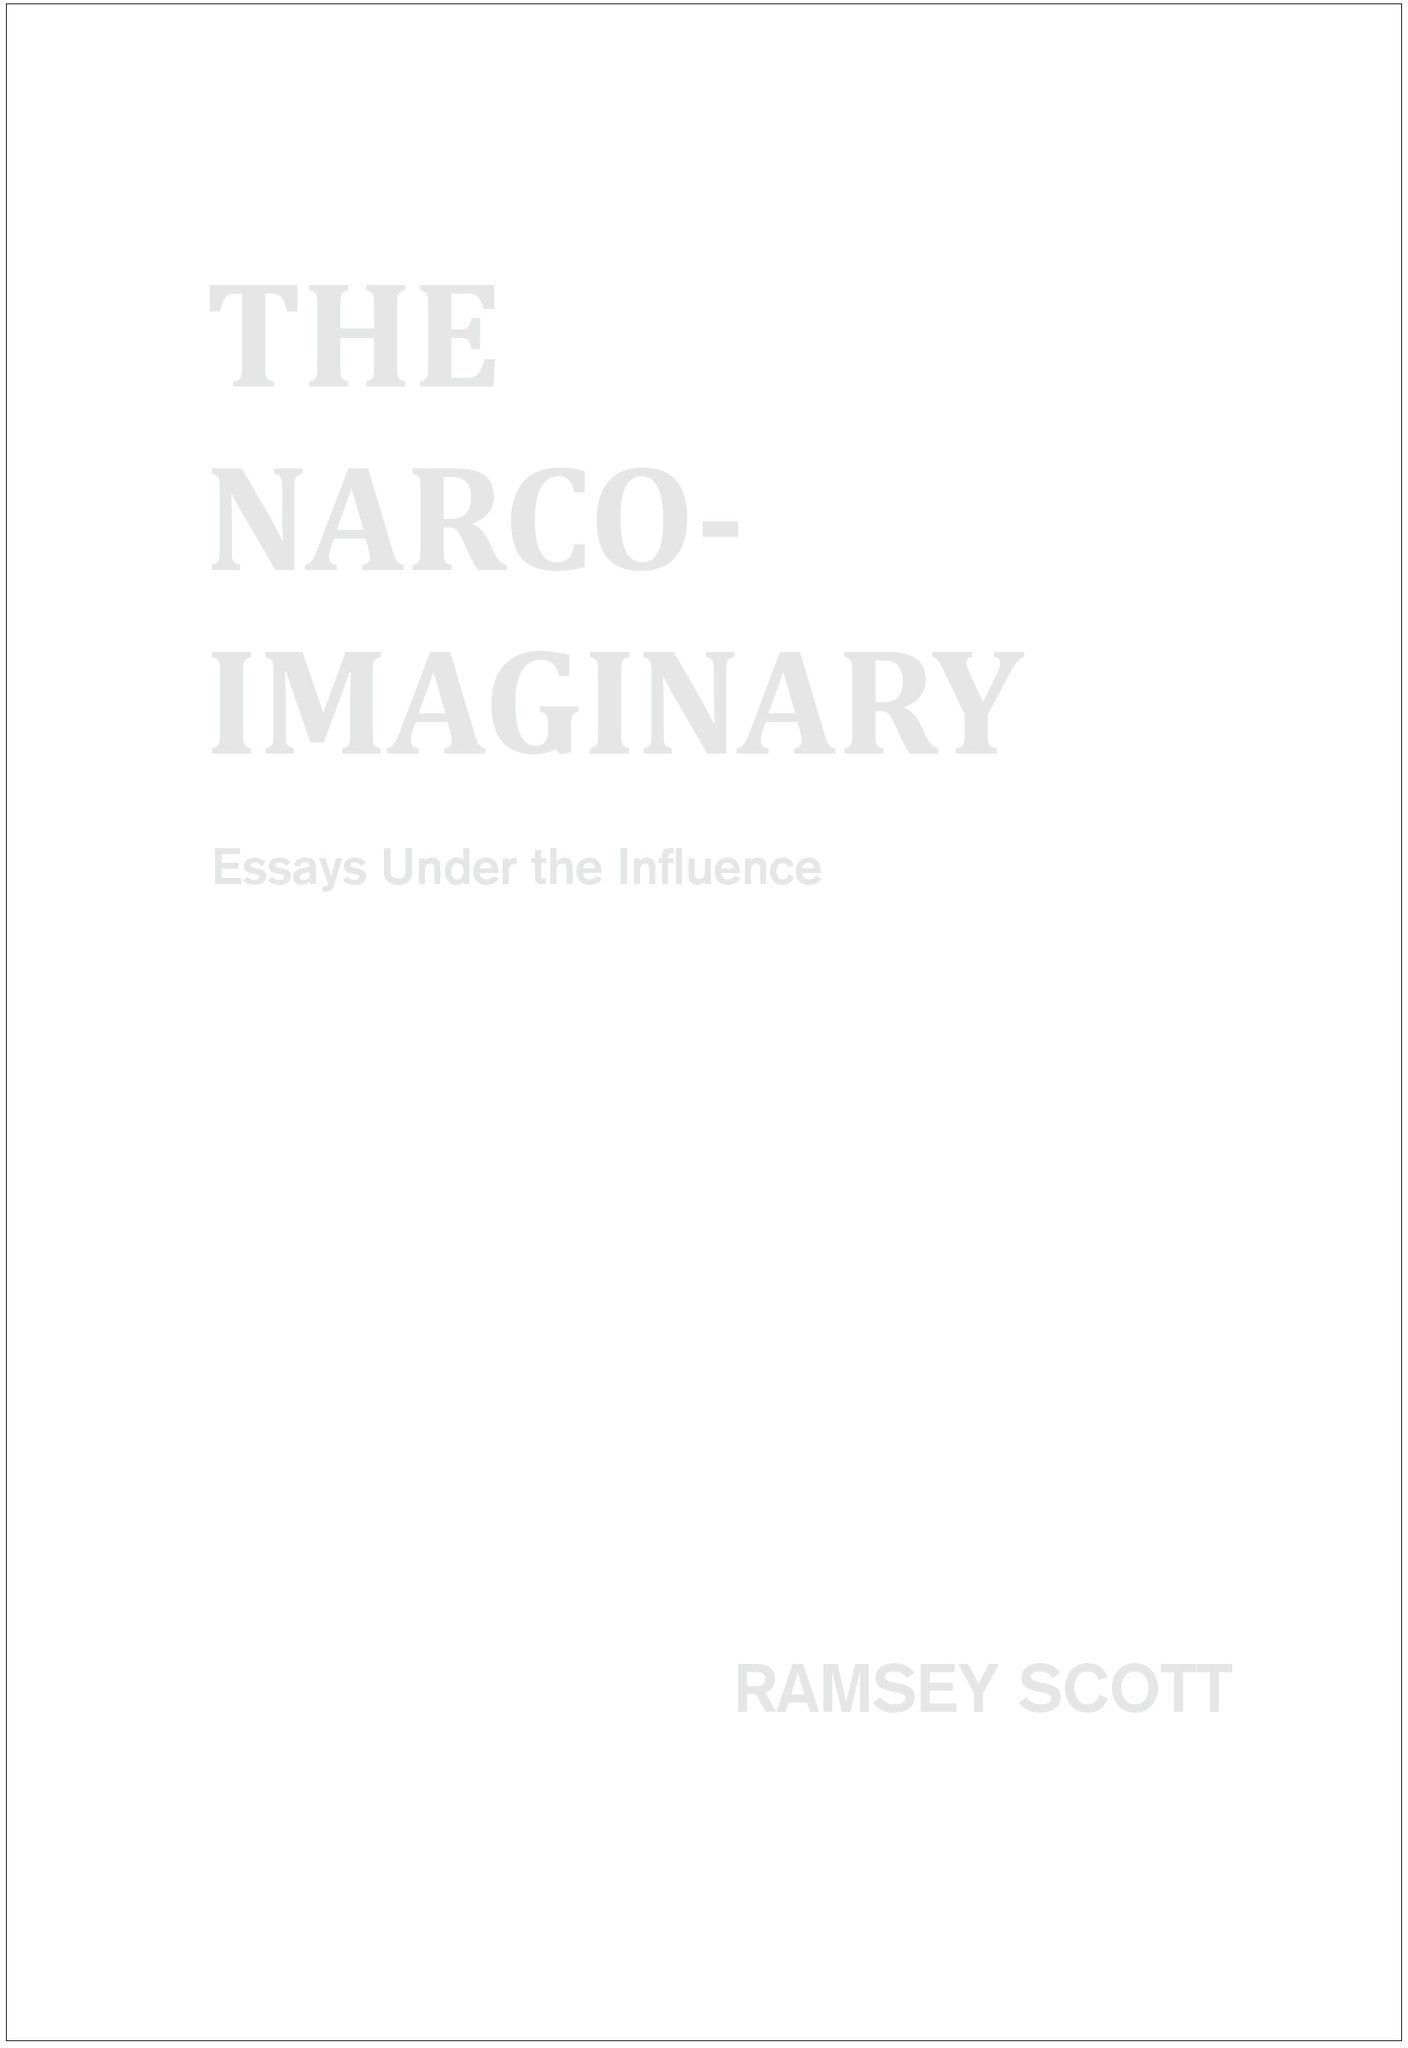 The Narco Imaginary: Essays Under the Influence